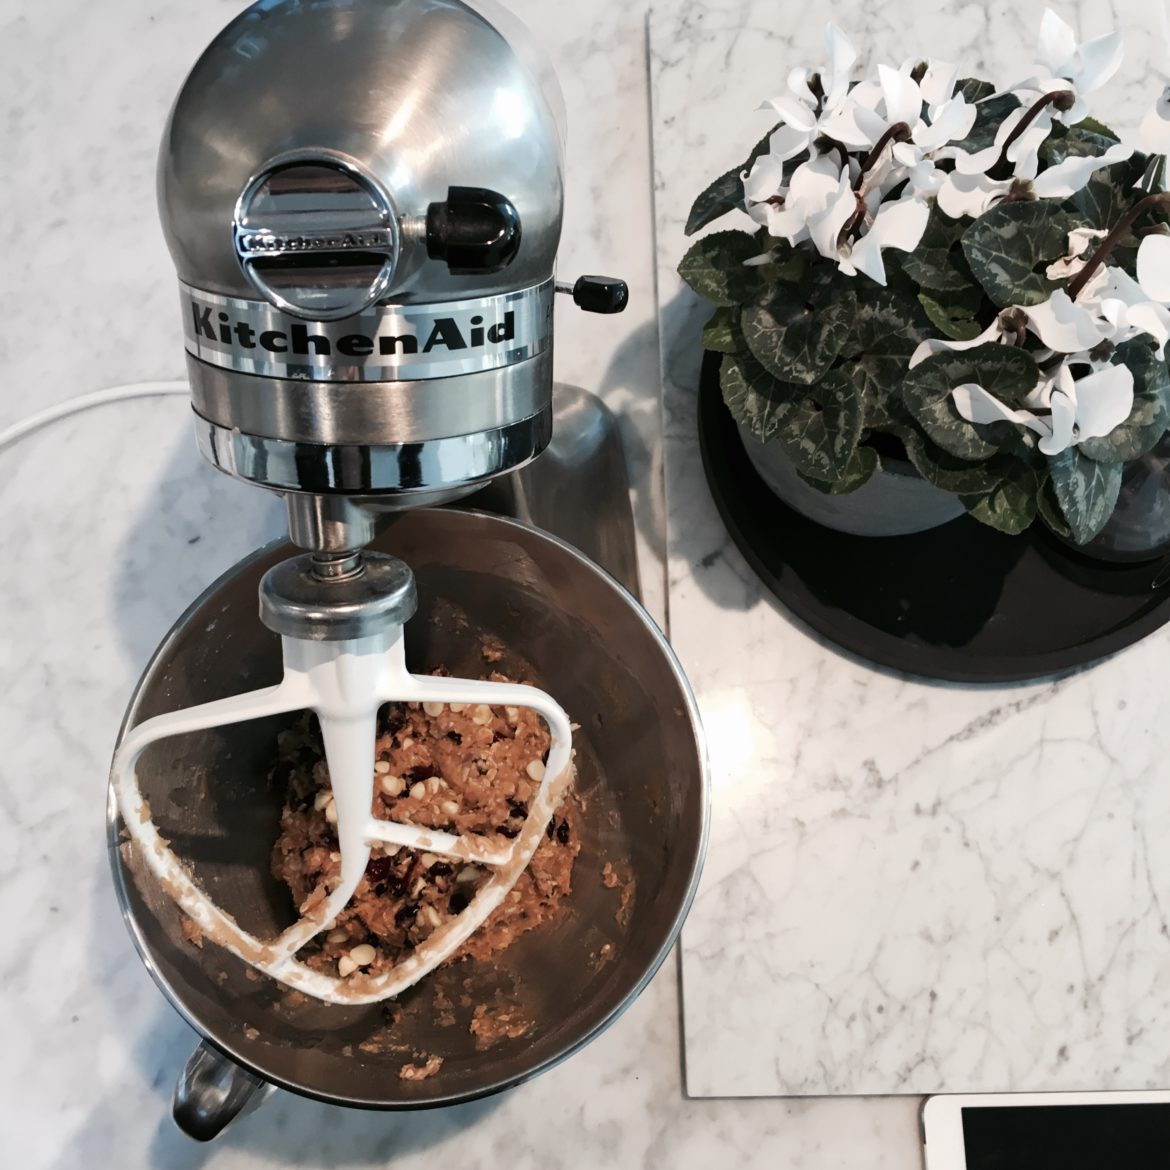 Image of a Kitchen Aid mixer mixing up a cookie dough mixture on a marble work bench.